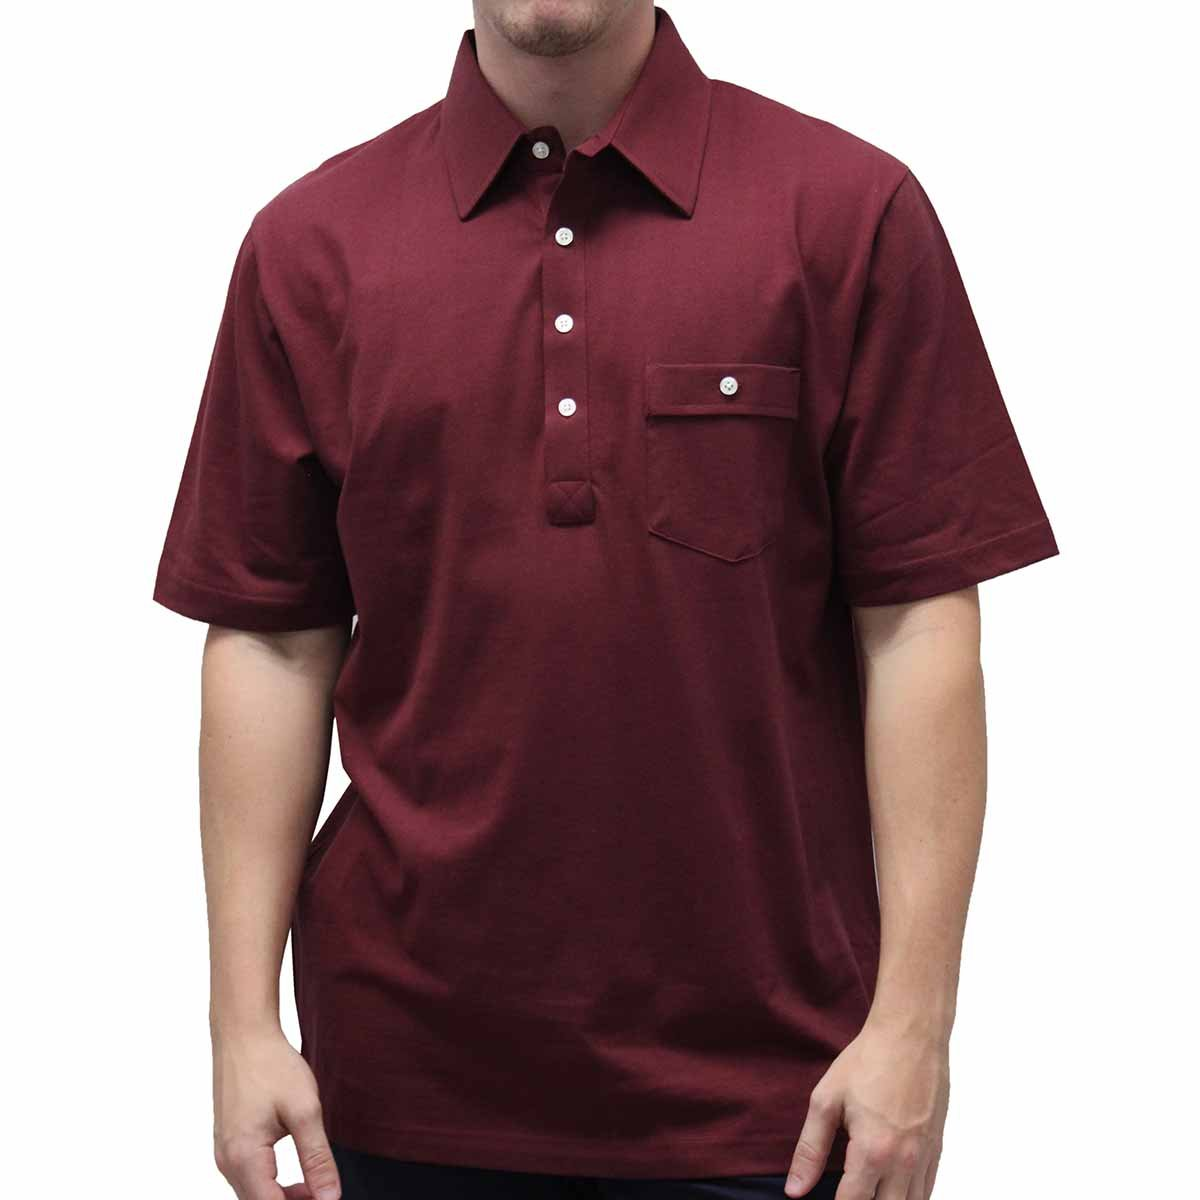 Palmland Solid Textured Short Sleeve Knit Big and Tall Burgundy